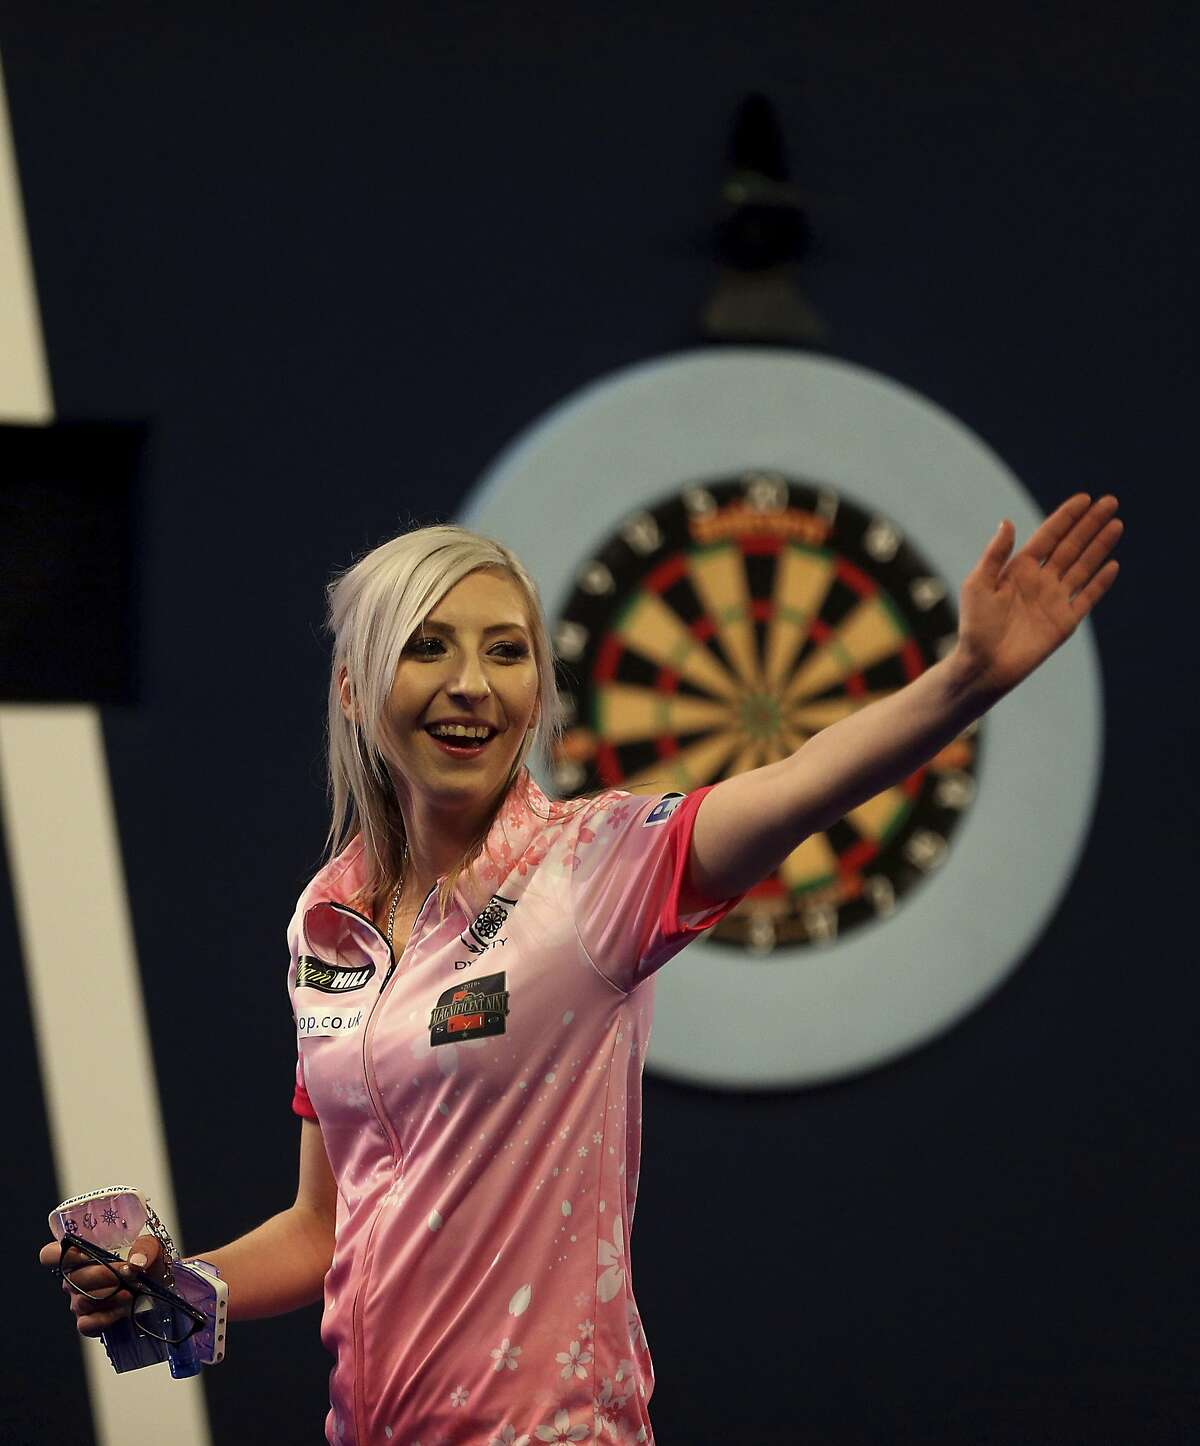 Fallon Sherrock celebrating after becoming the first women to win a game in the PDC Darts World Championship at Alexandra Palace, London, Tuesday Dec. 17, 2019. Sherrock become the first female player to beat a man at the PDC World Championship after she recovered from losing the opening set to beat Ted Evetts 3-2 in front of a raucous crowd at Alexandra Palace. (Steven Paston/PA via AP)